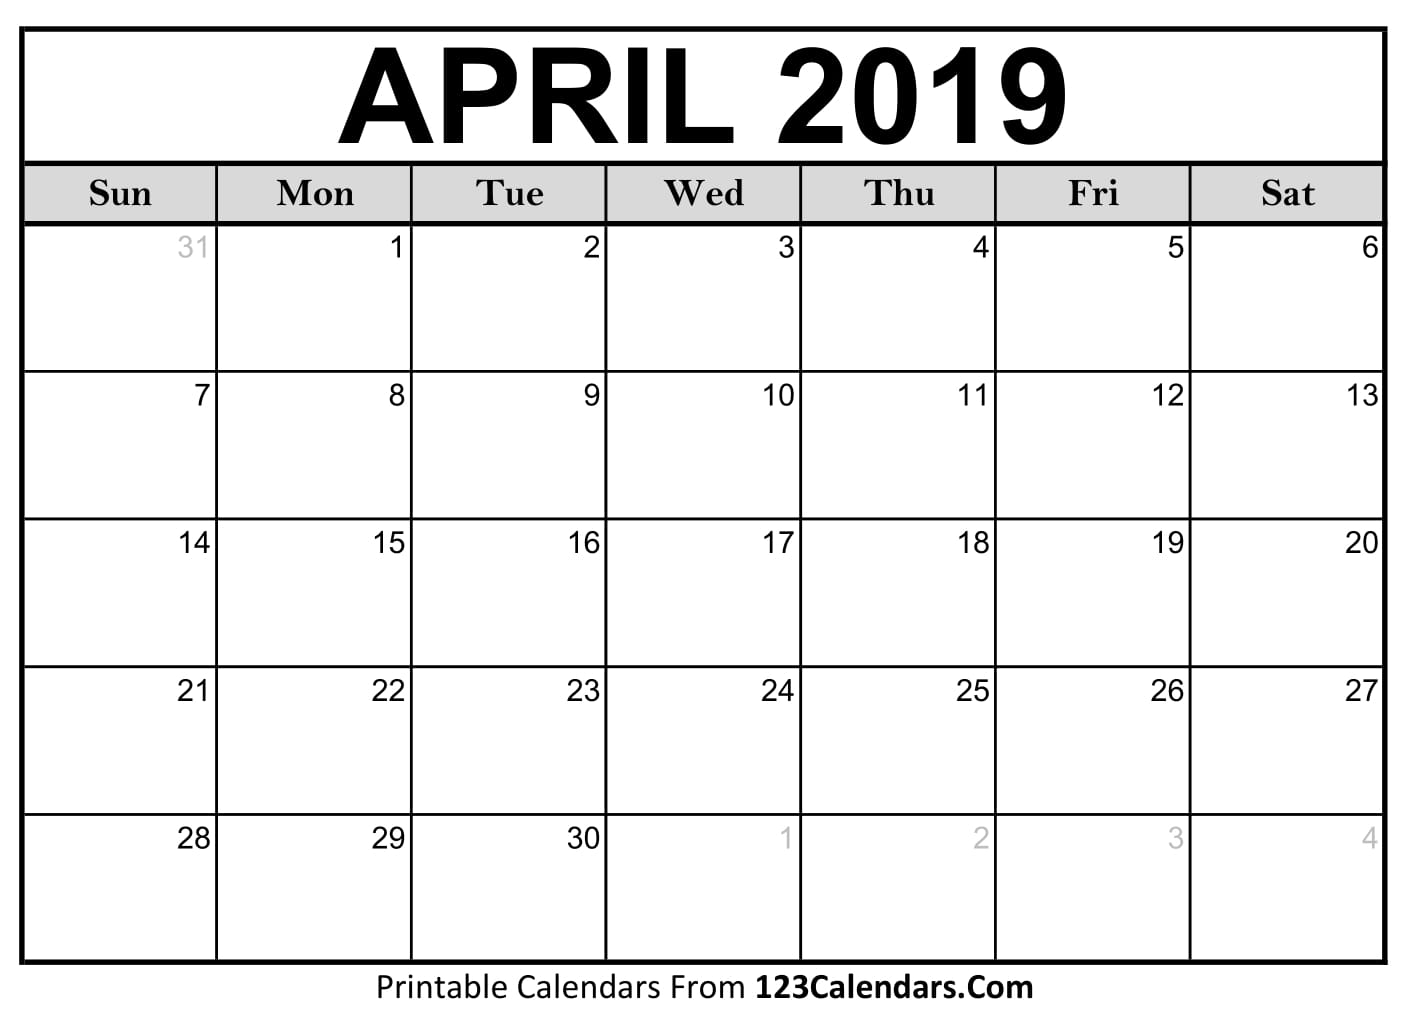 April 2018 Calendar April 2018 Printable Template Calendar April 2018 Calendar with holidays 2018 April Calendar PDF